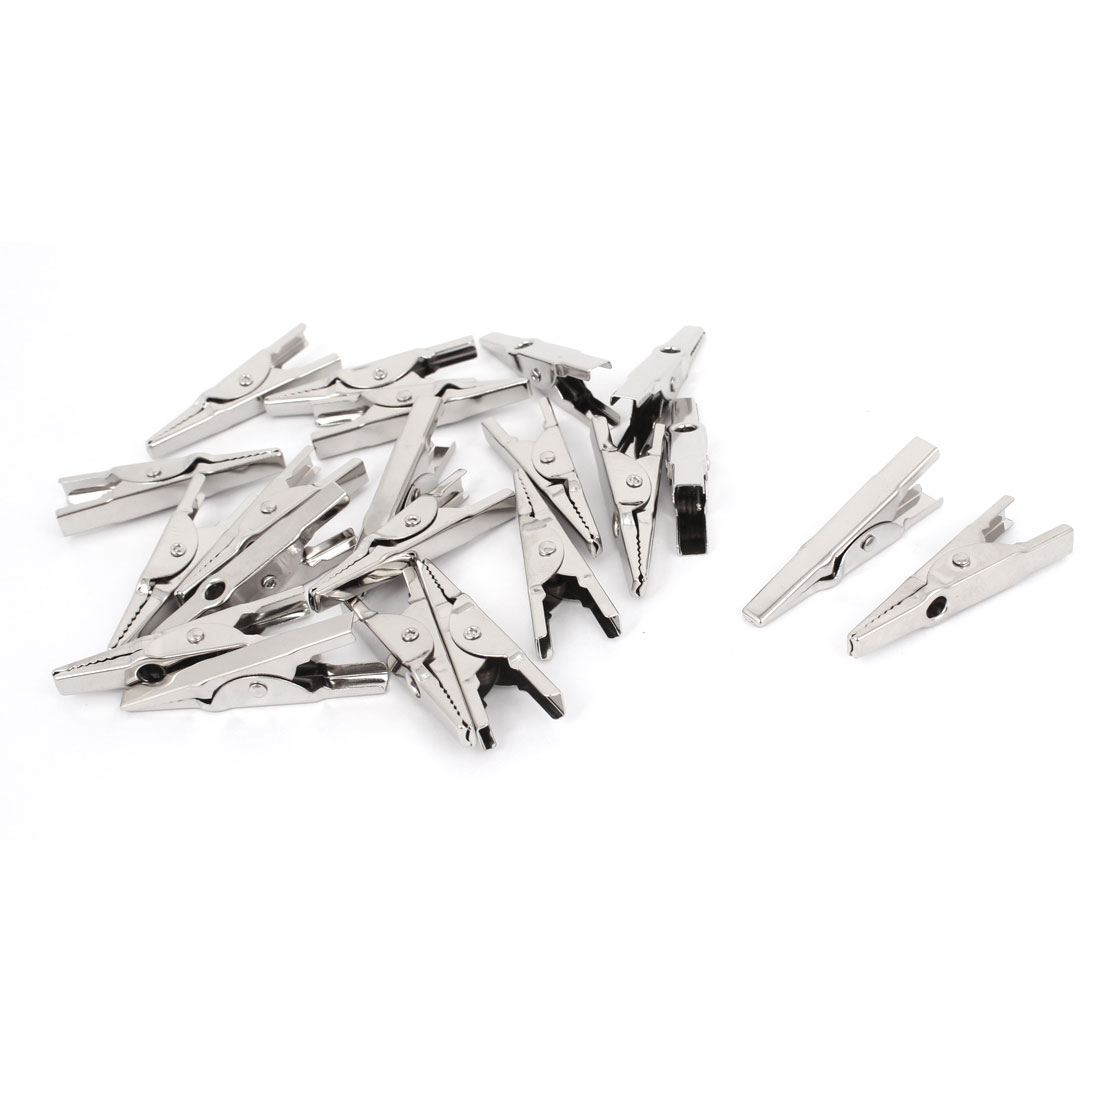 20 Pcs Electric Test Silver Tone Crocodile Alligator Clips Clamps 43mm Long - image 1 of 1